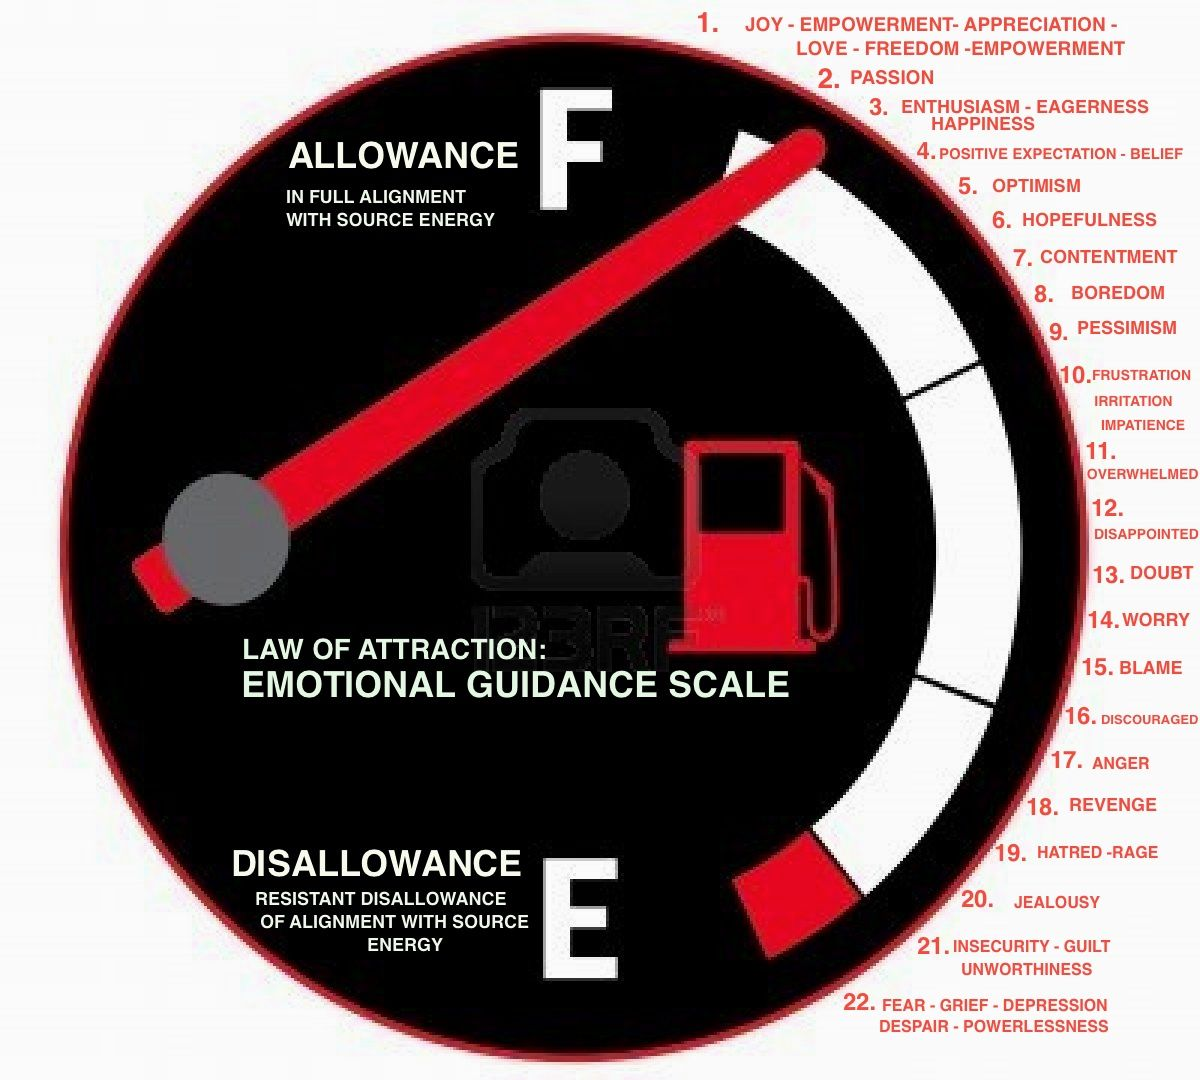 Law of attraction emotional guidance scale of alignment with law of attraction emotional guidance scale of alignment with source energy always intend to move biocorpaavc